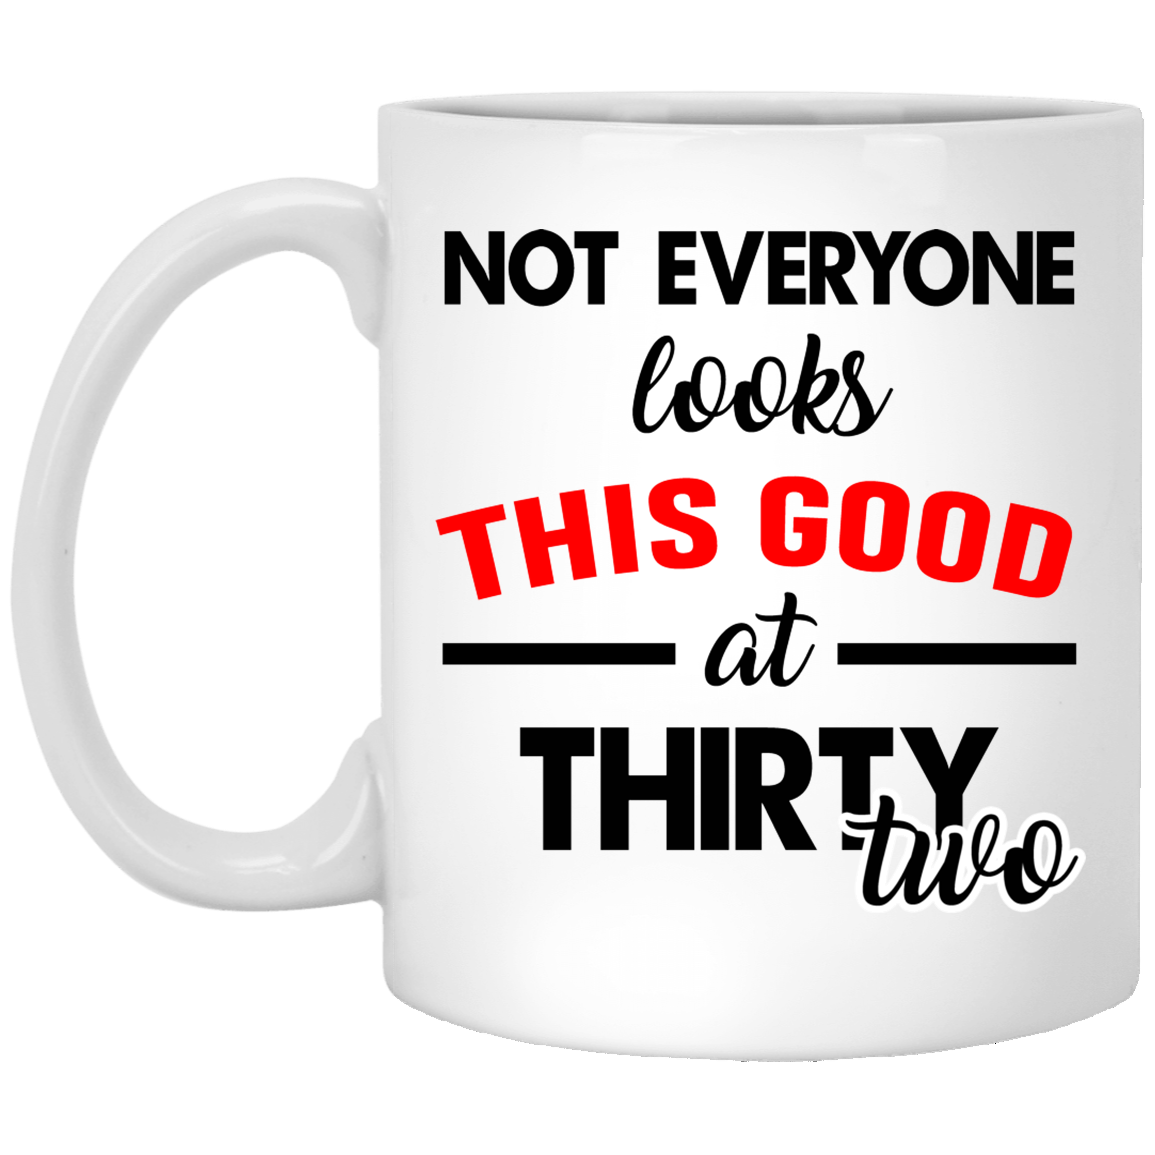 32nd-Birthday-Gifts-Not-everyone-looks-this-good-at-thirty-two Funny Quotes Coffee Mug 99promocode